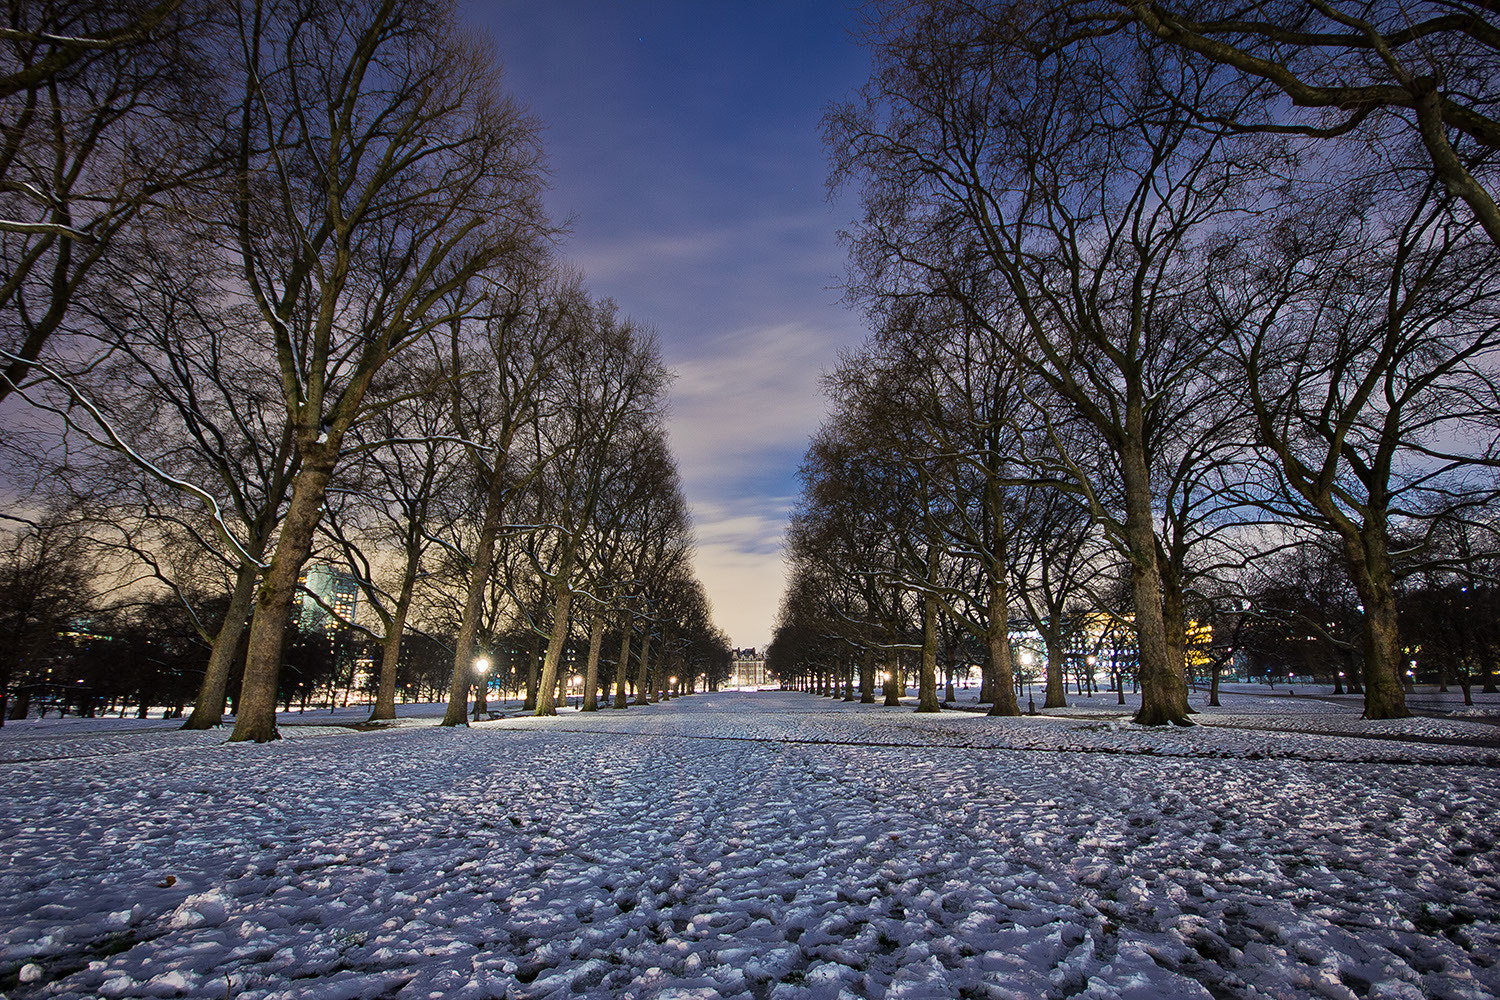 Photograph Green Park at night by Paulo Eduardo Canedo Nabas on 500px